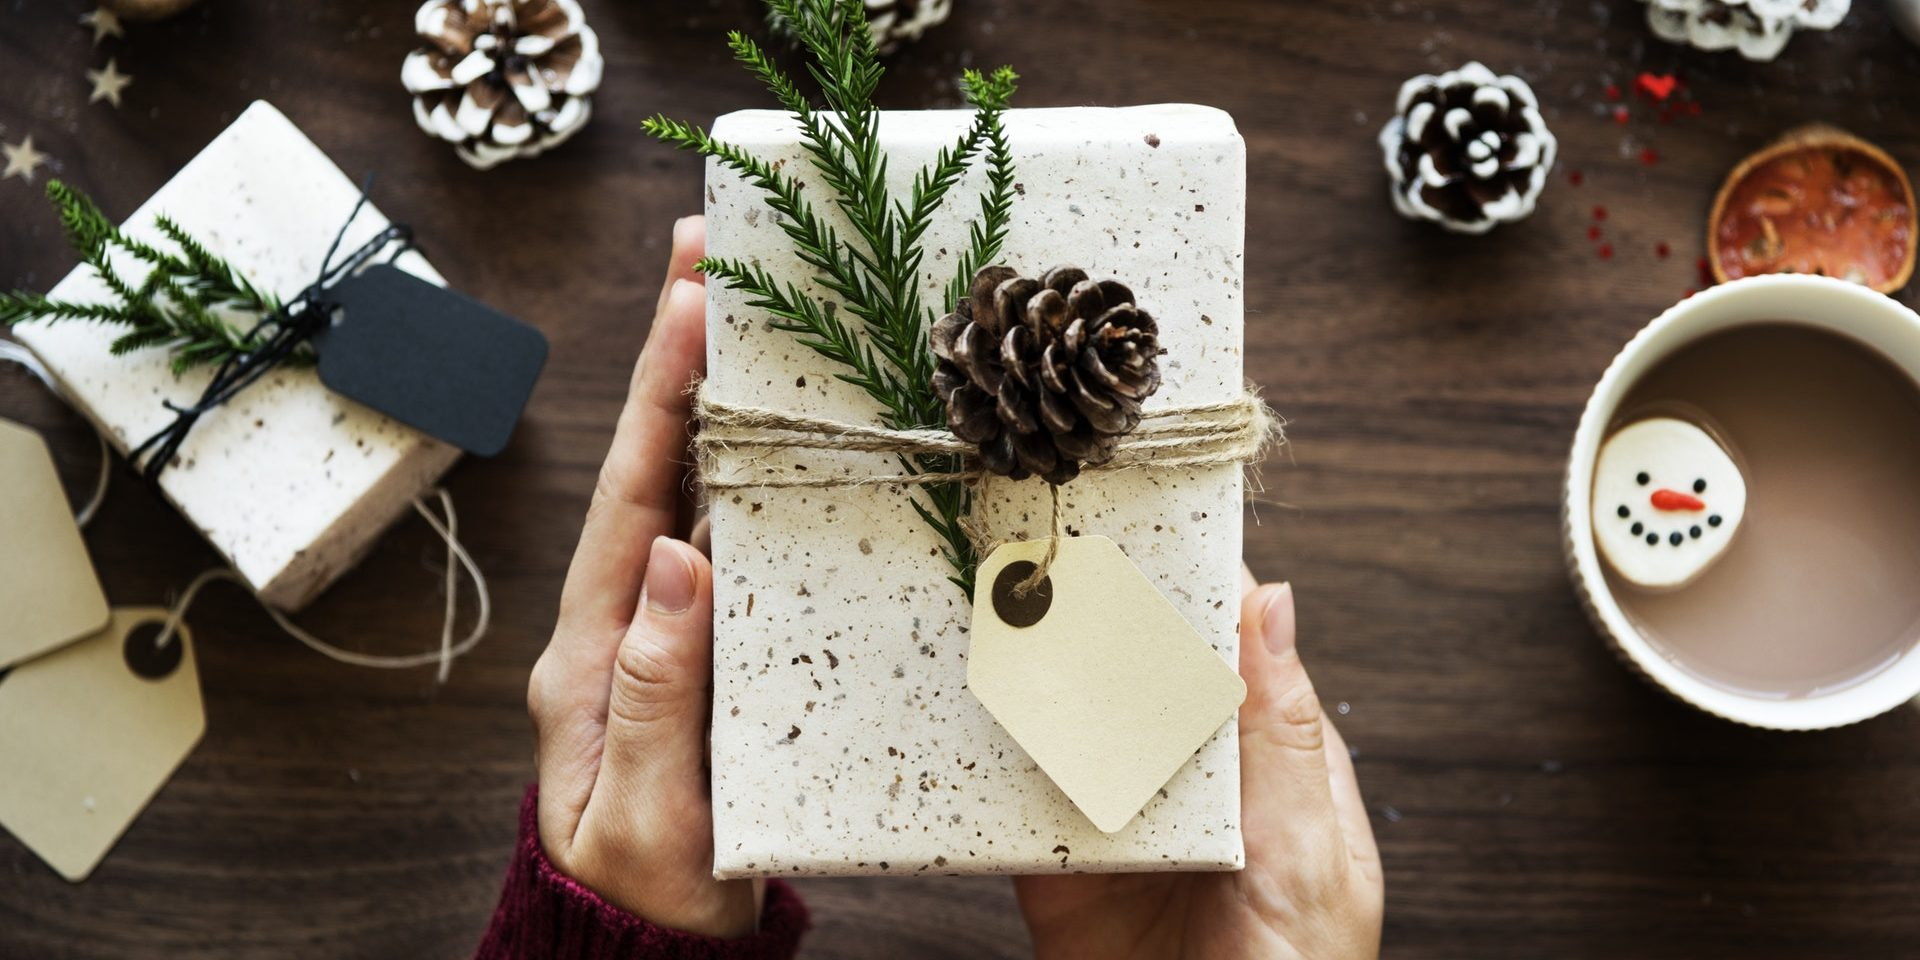 RCO tips for a waste-free holiday season